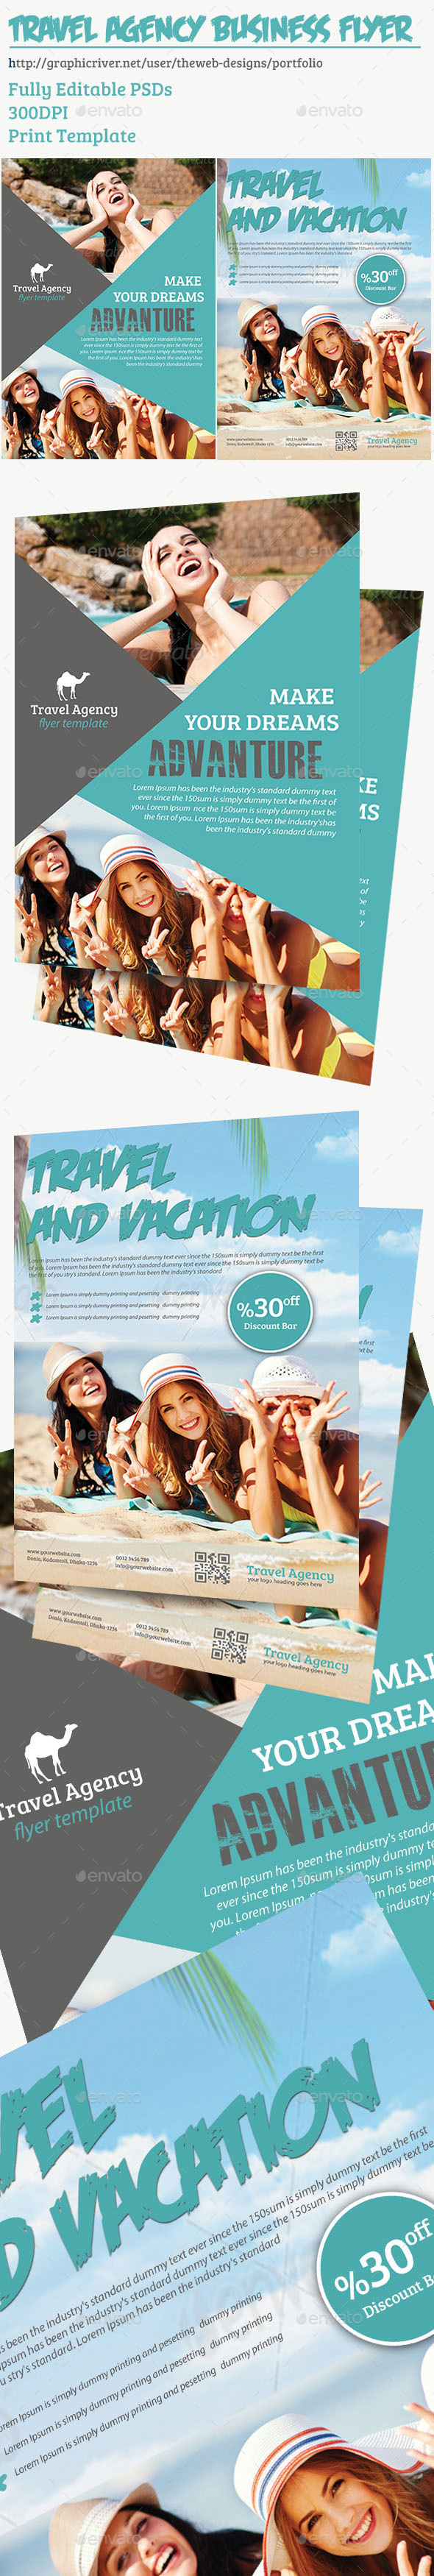 Travel Agency Flyer Template - Flyers Print Templates